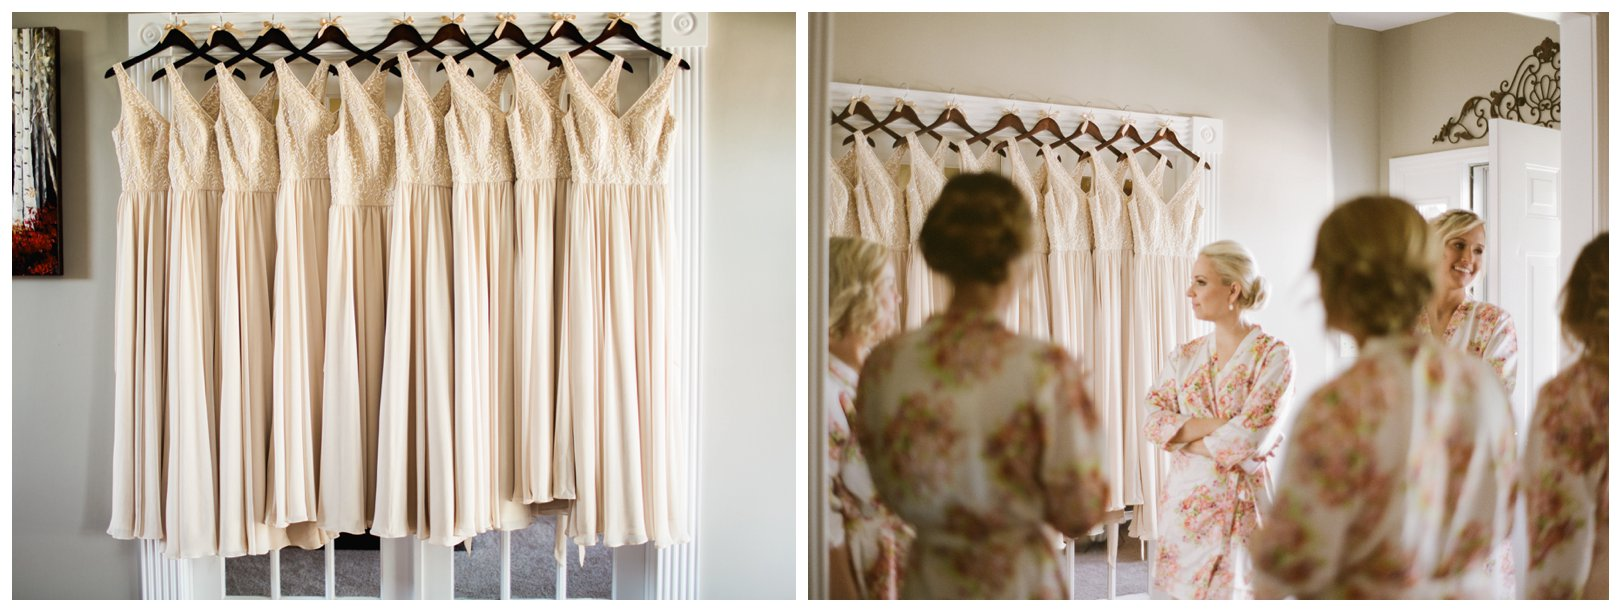 lauren muckler photography_fine art film wedding photography_st louis_photography_1050.jpg